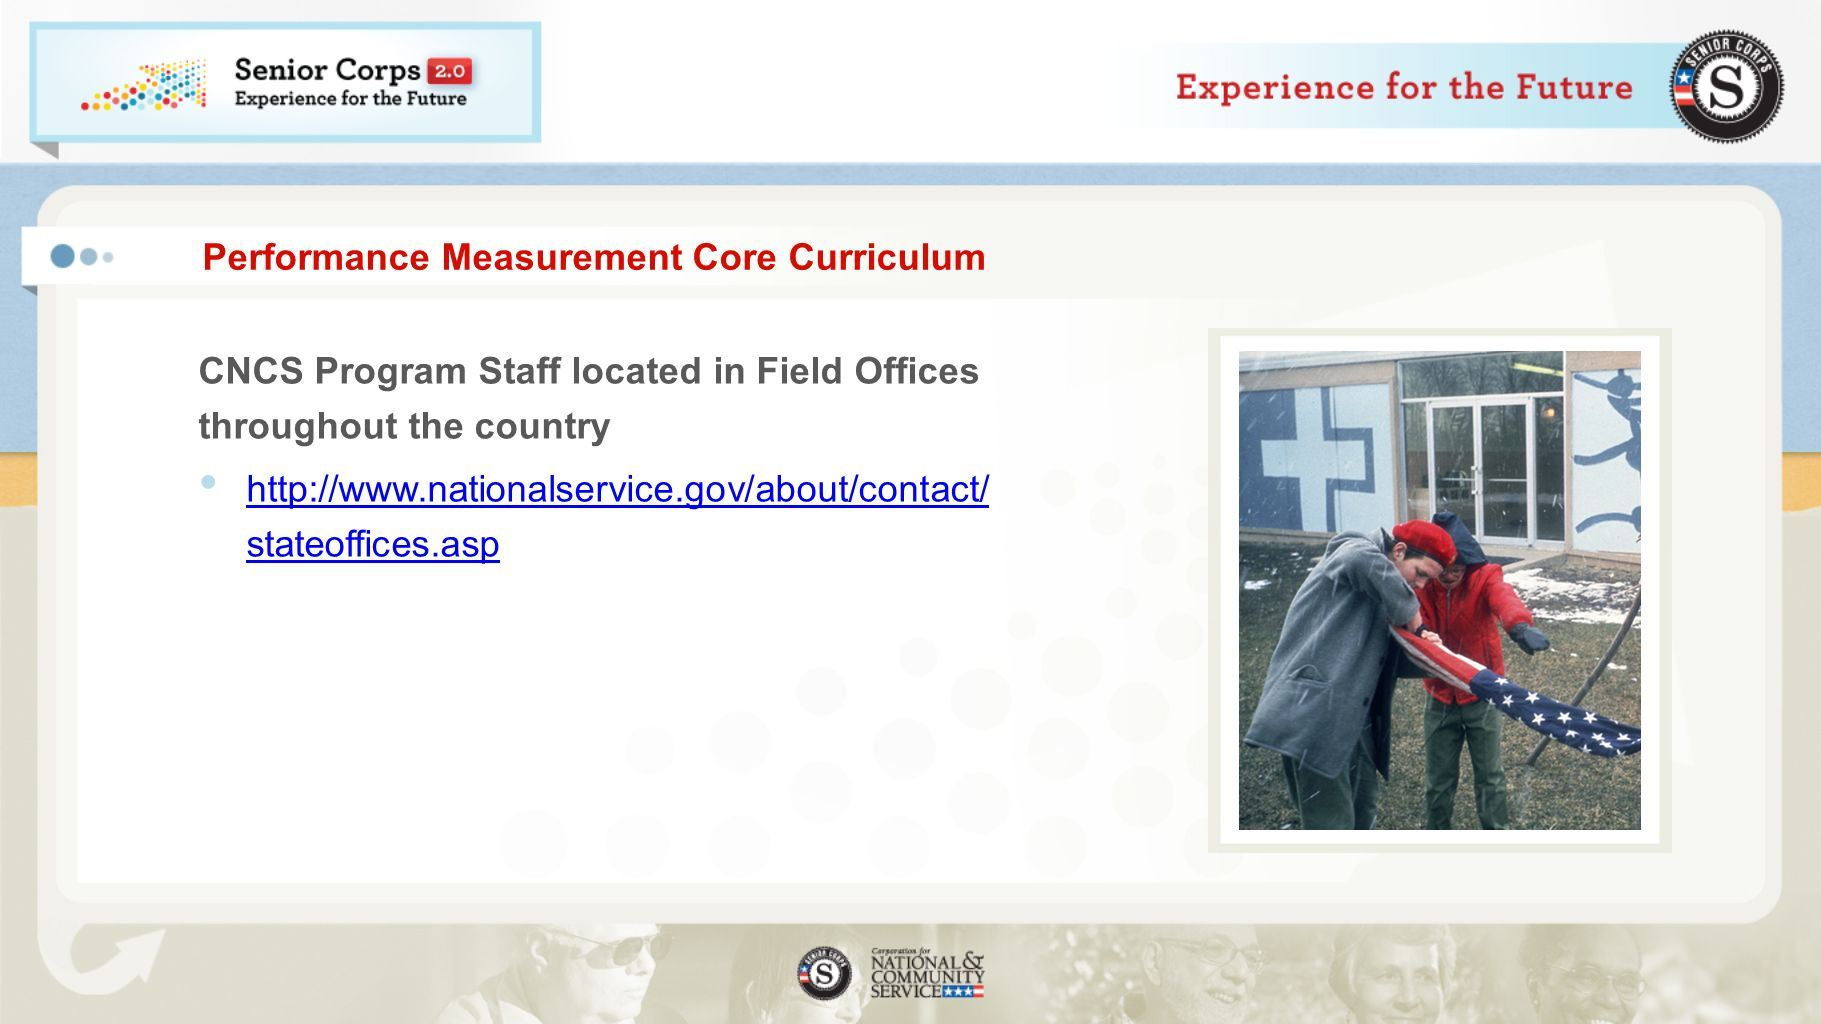 Performance Measurement Core Curriculum CNCS Program Staff located in Field Offices throughout the country http://www.nationalservice.gov/about/contact/ stateoffices.asp http://www.nationalservice.gov/about/contact/ stateoffices.asp